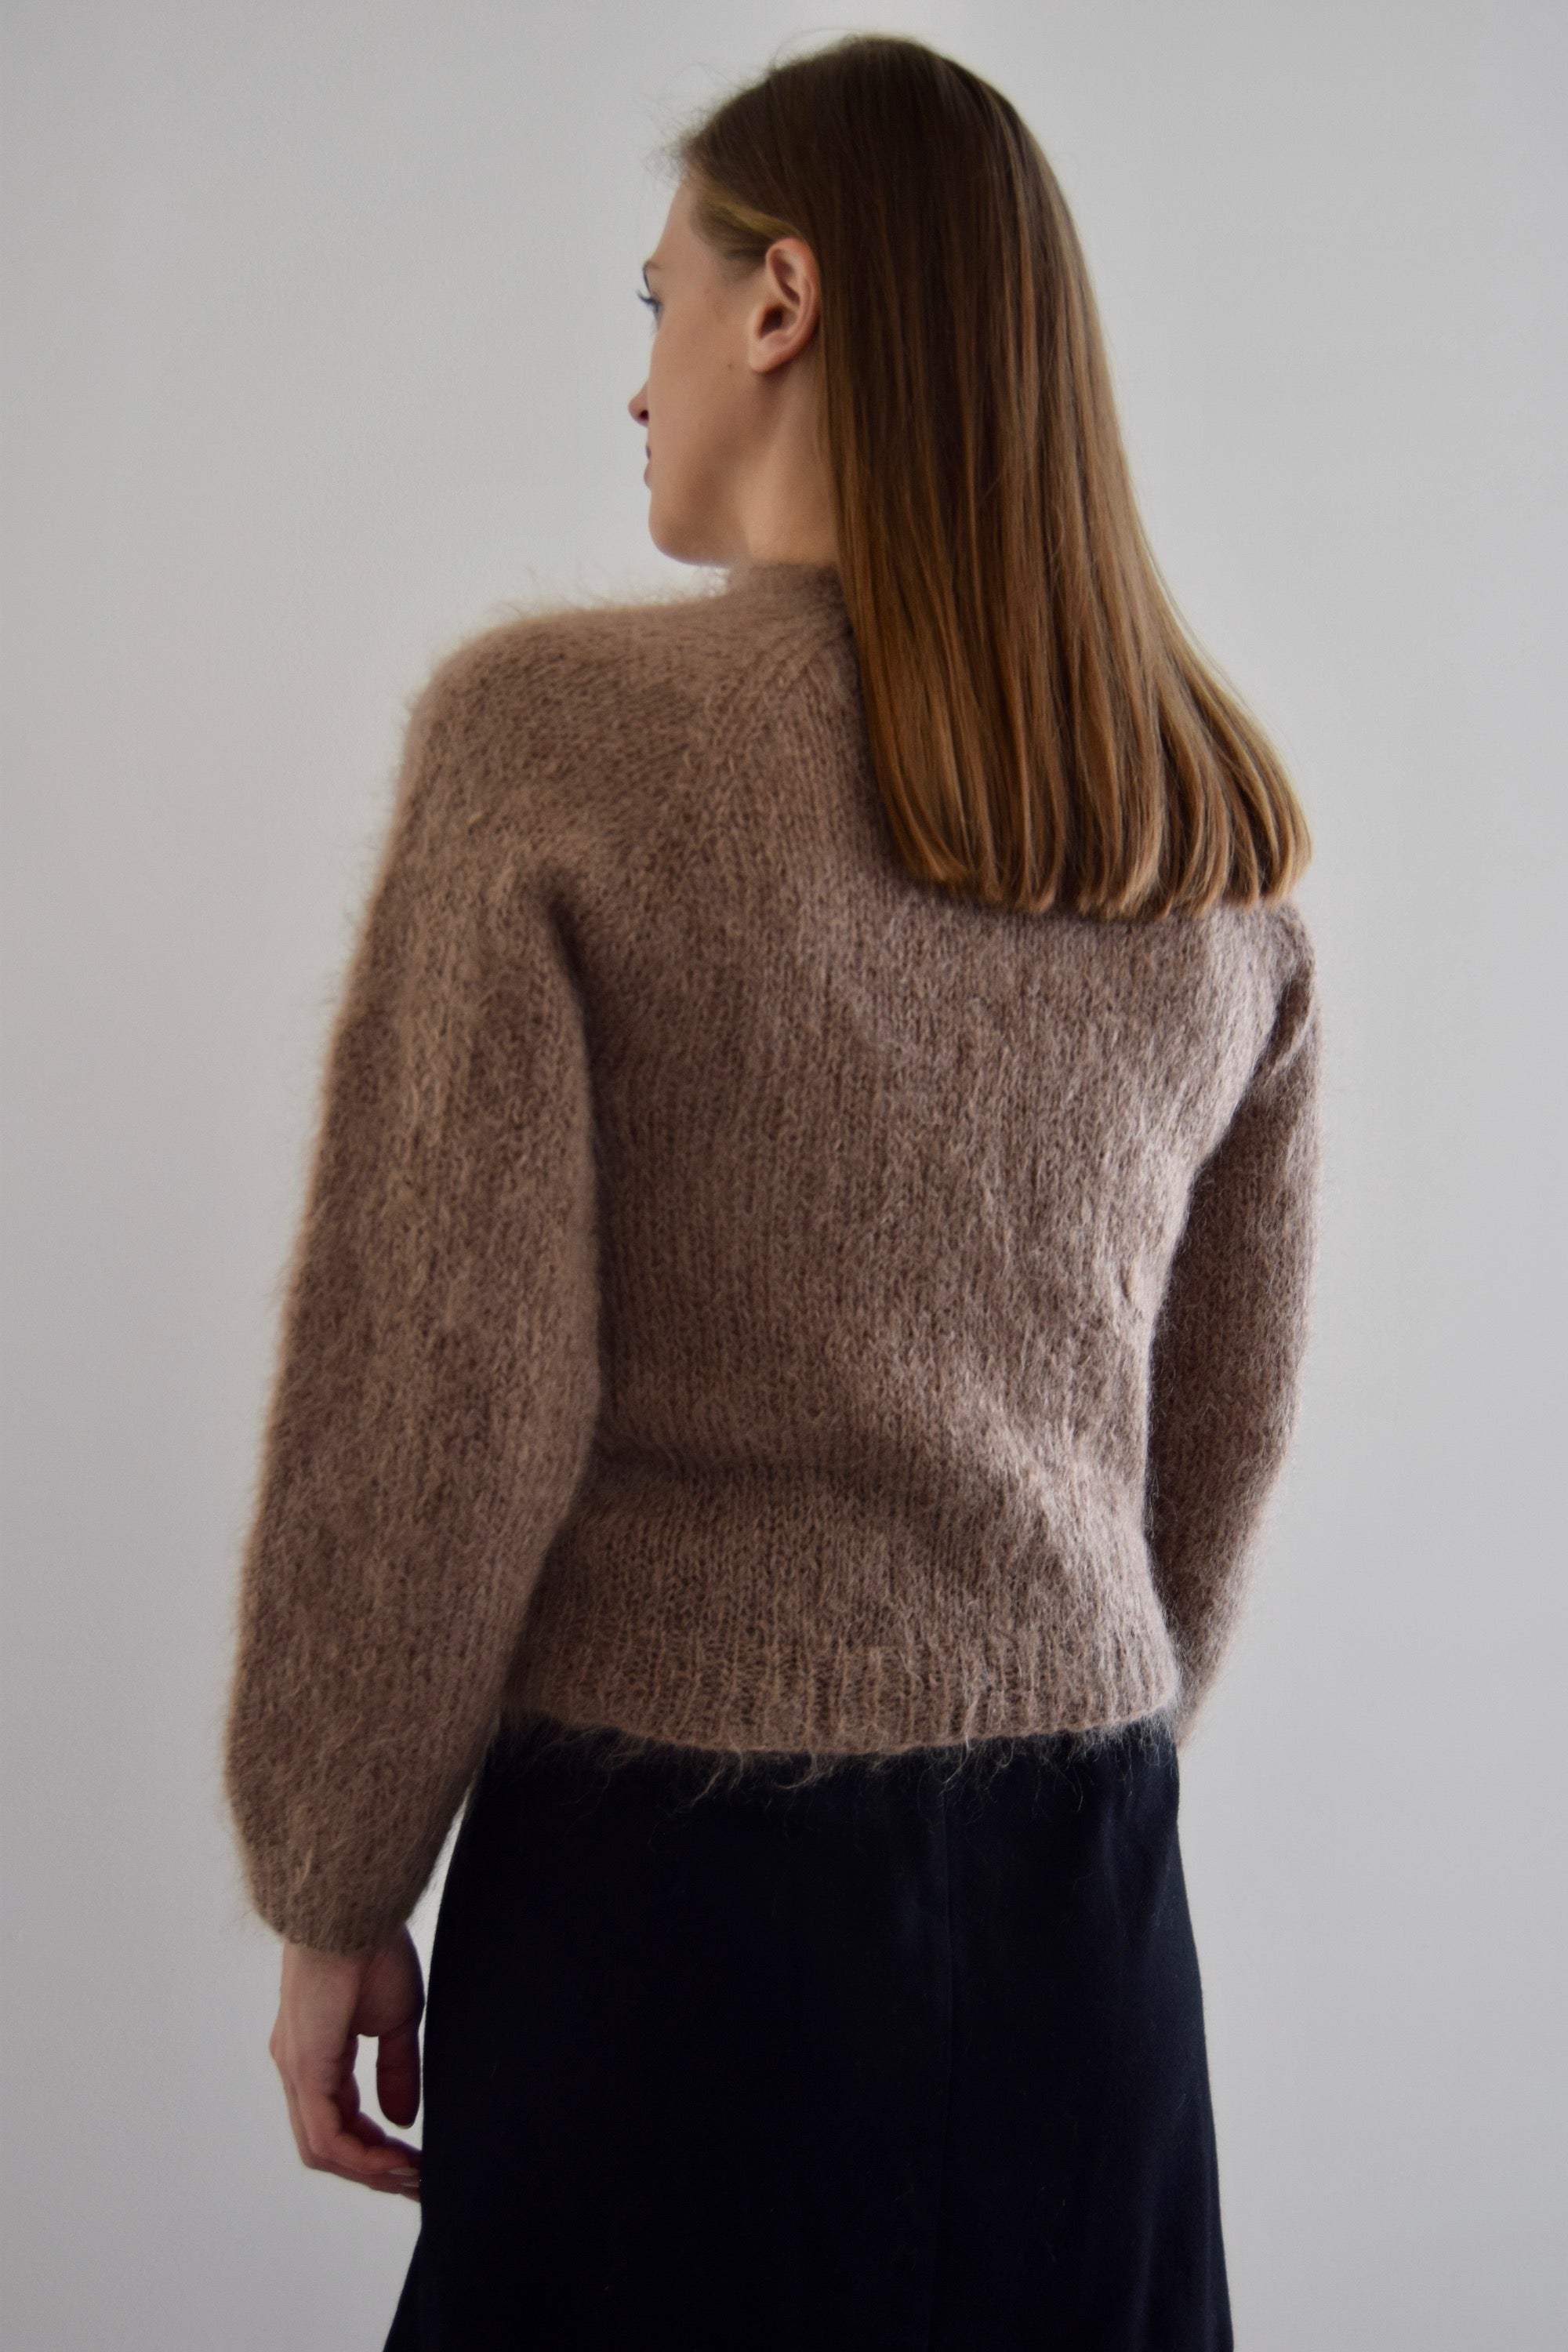 Mousy Brown Mohair Cardigan